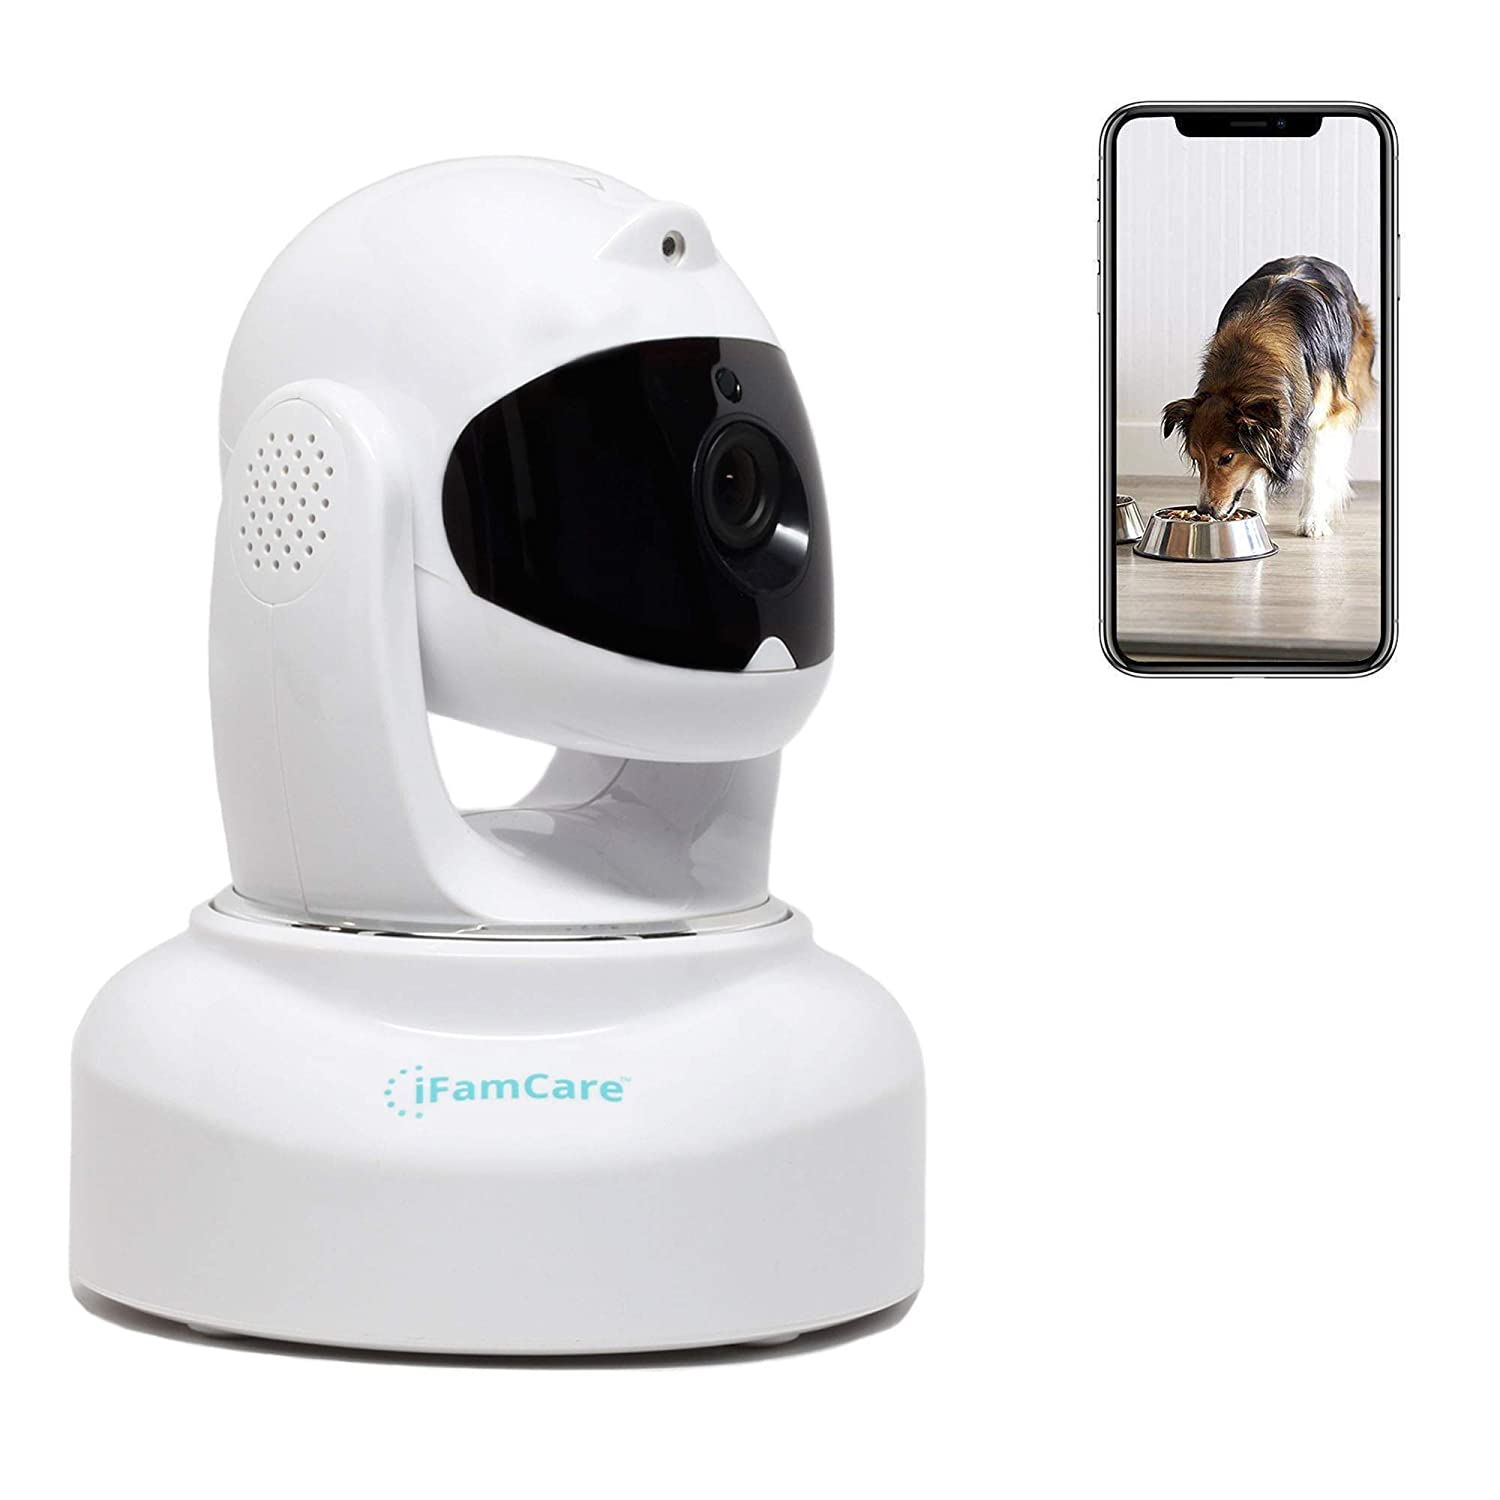 iFamCare WiFi Security Camera 1080P Wireless Video Home Monitor Pet Camera Two Way Night Vision Motion Alert Specially with Pet Play Laser for iOS Android